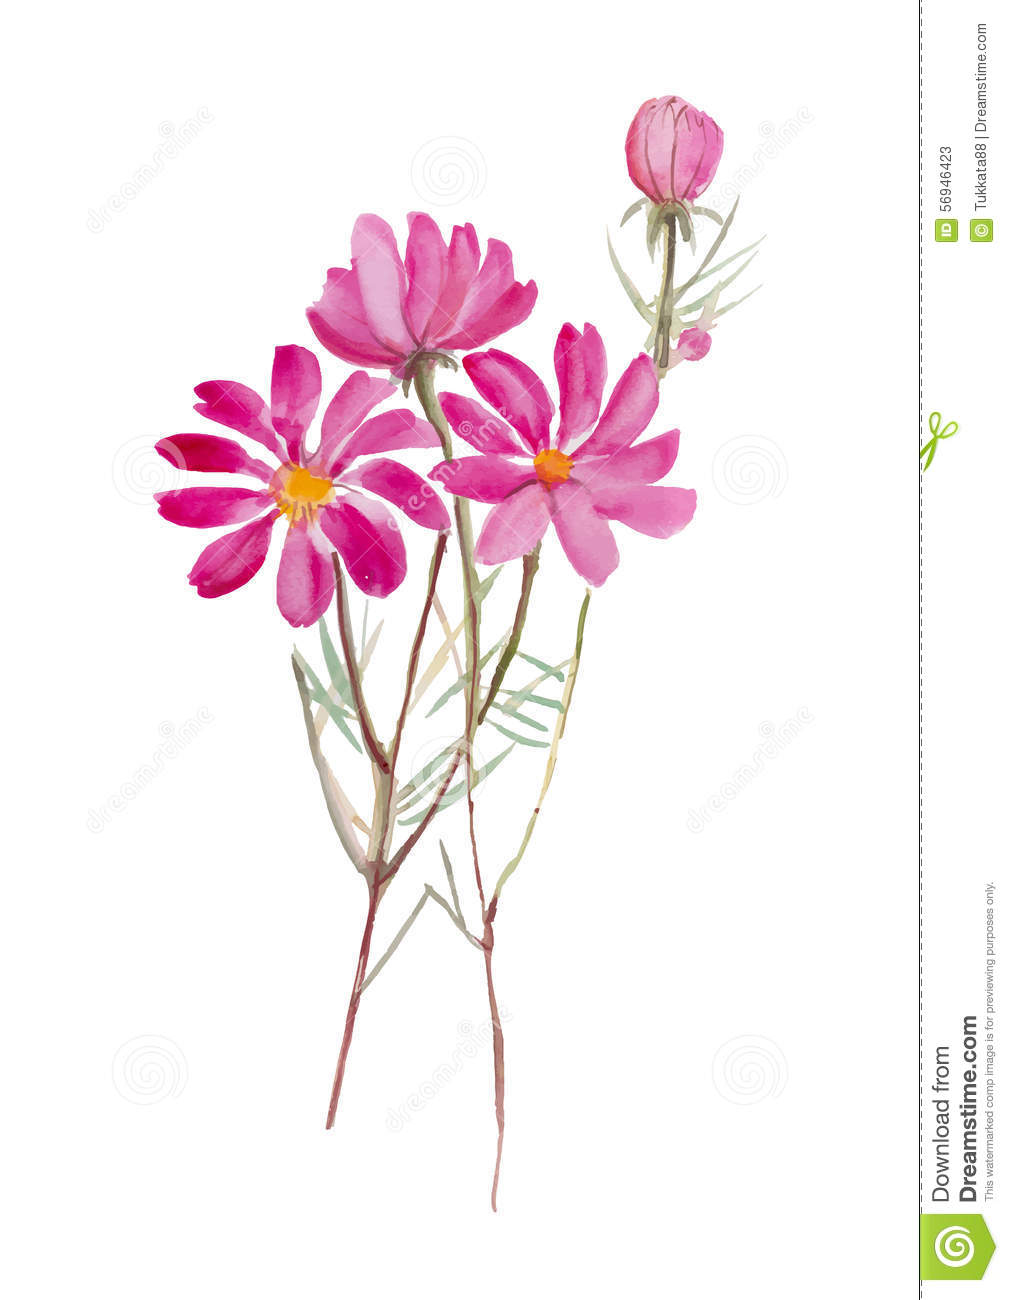 Cosmos Flowerhand Drawn Watercolor Painting On White Background W